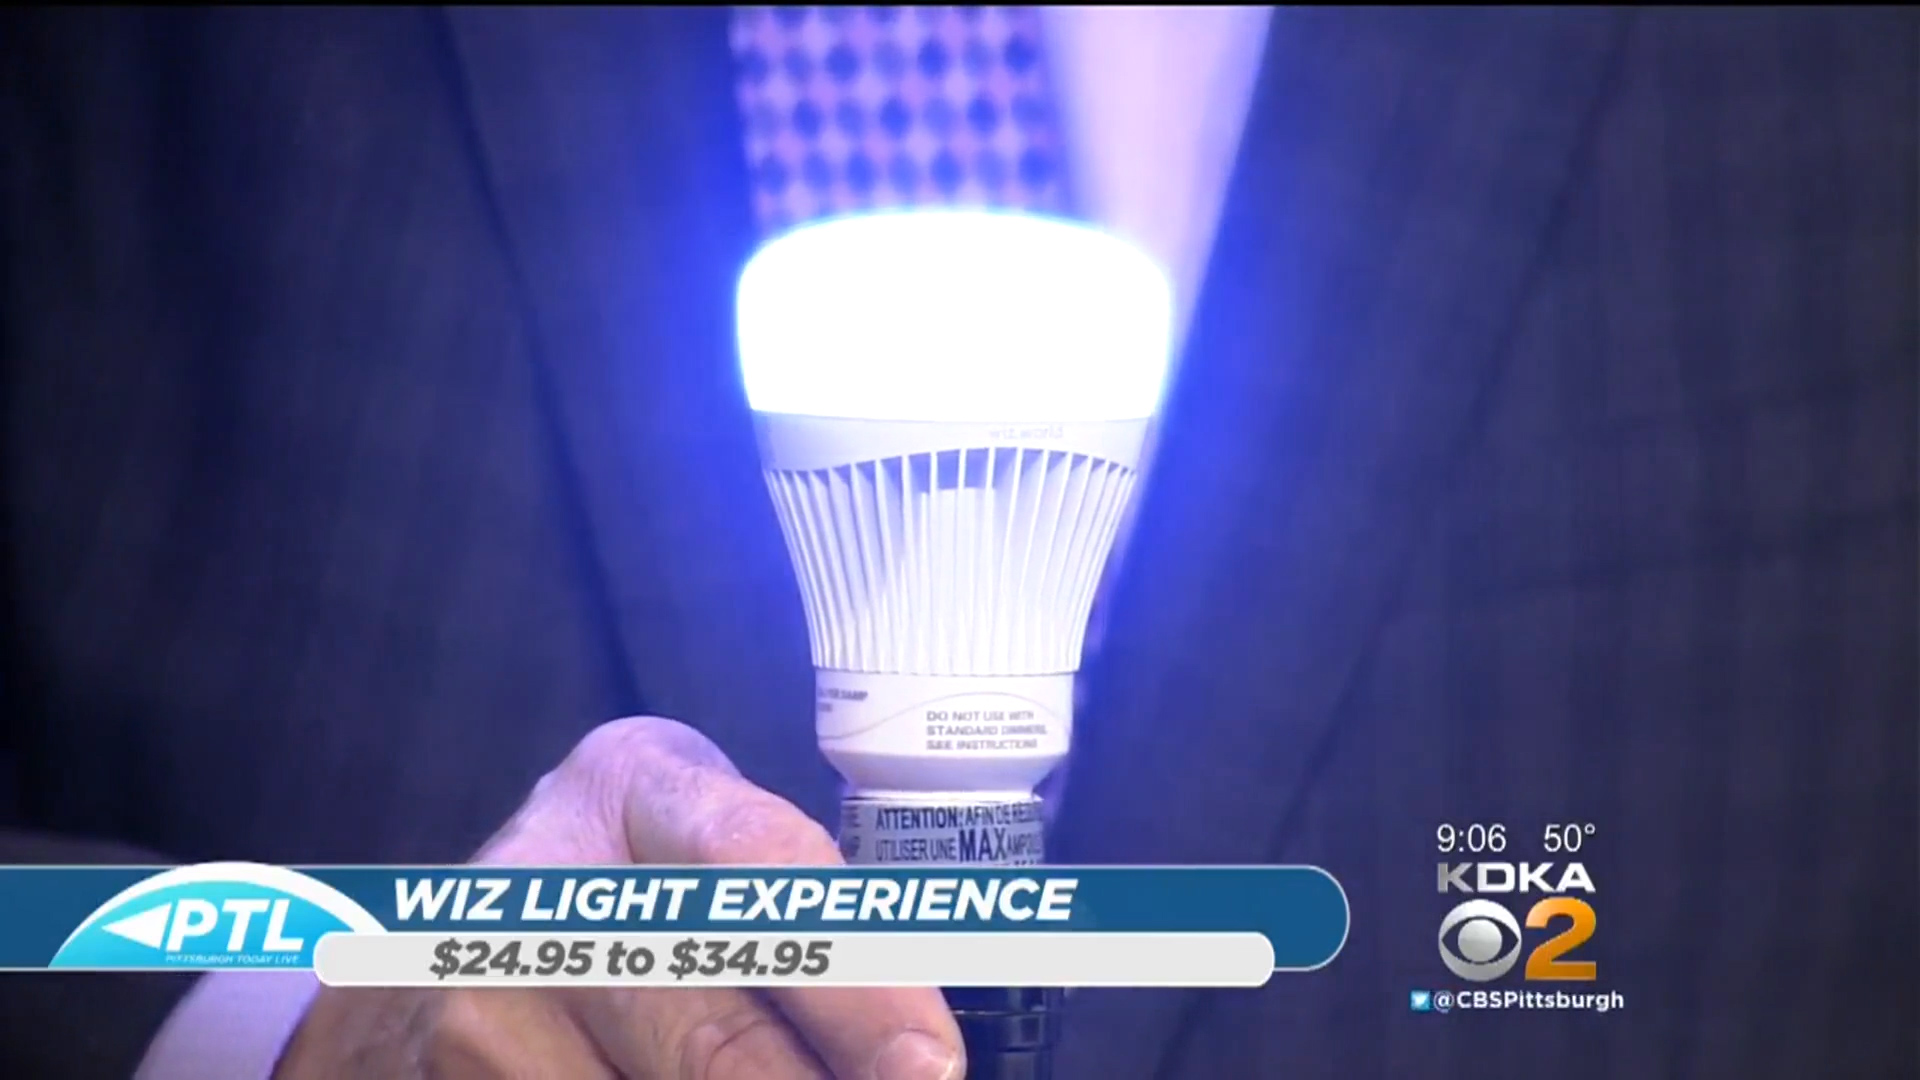 WIZ (THE ULTIMATE LIGHT EXPERIENCE) - Starting at $24.95Shop Now